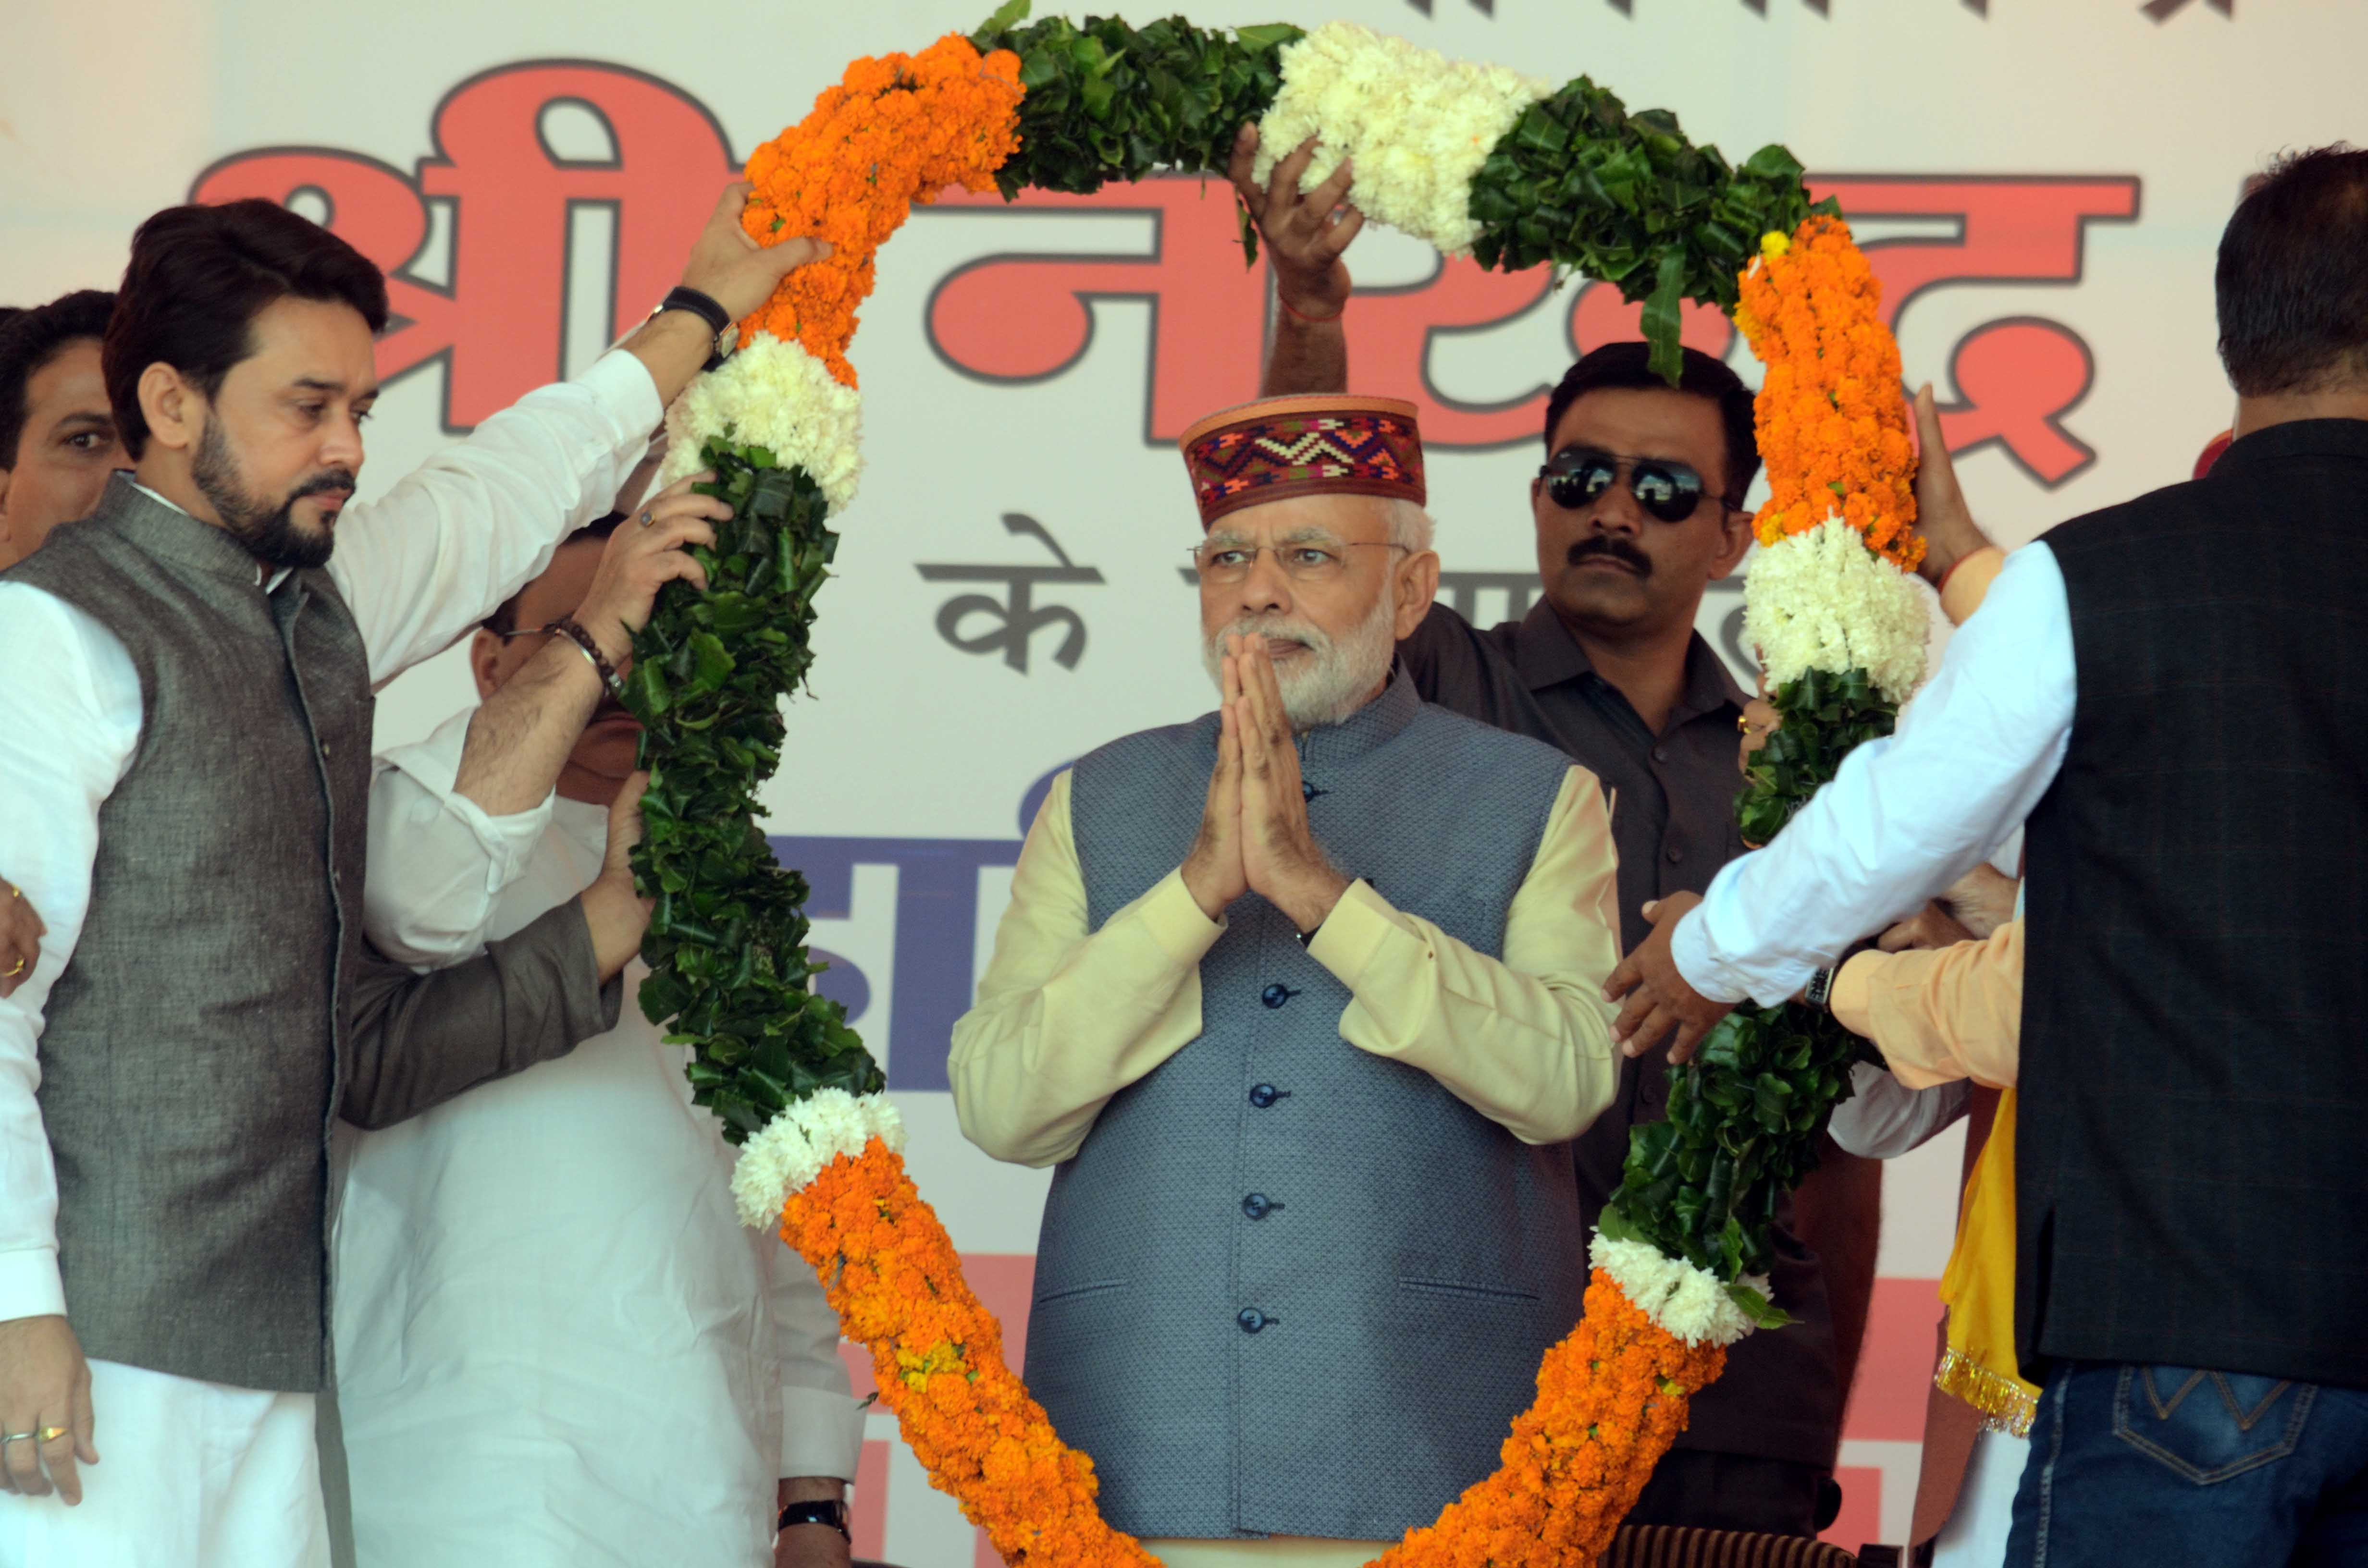 Prime Minister Narendra Modi being warm welcome by party leaders in Mandi on Tuesday. Express photo by Lalit Kumar. 18.10.2016.